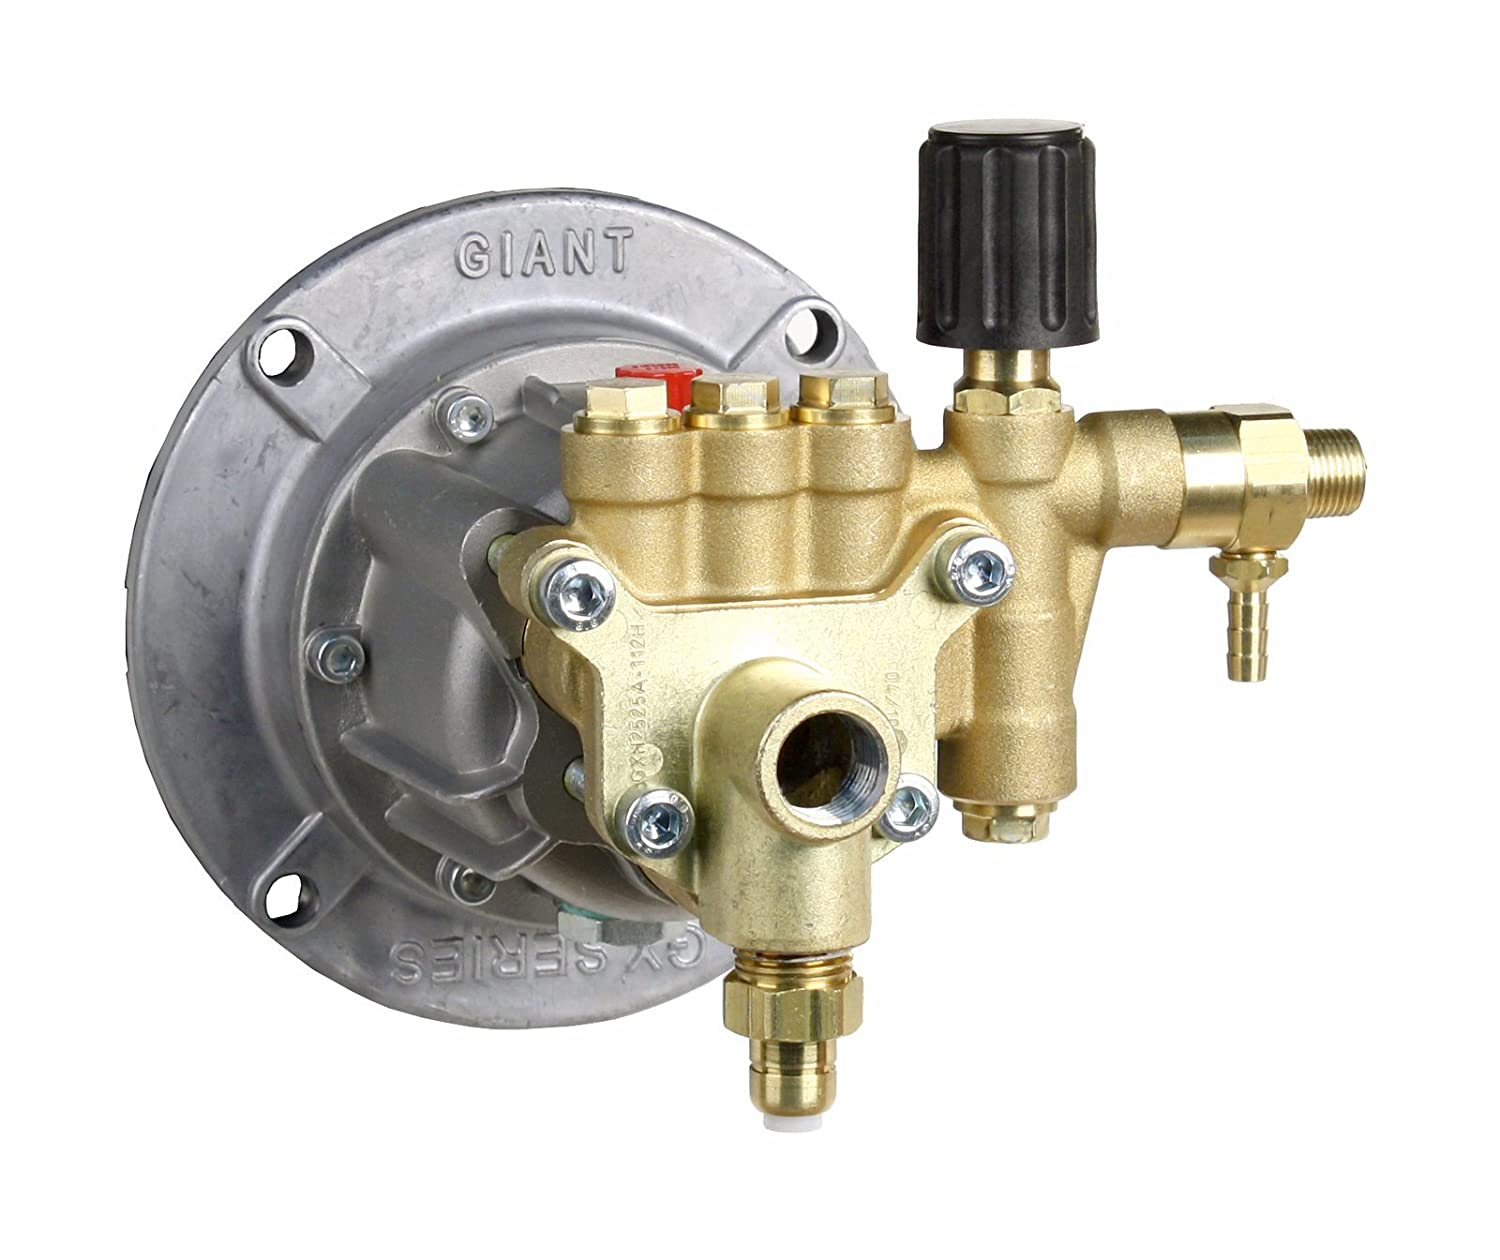 Amazon.com: Giant GXH2525A-112H Pump GXH2525A-112H, [emailprotected],  3450RPM: Industrial & Scientific